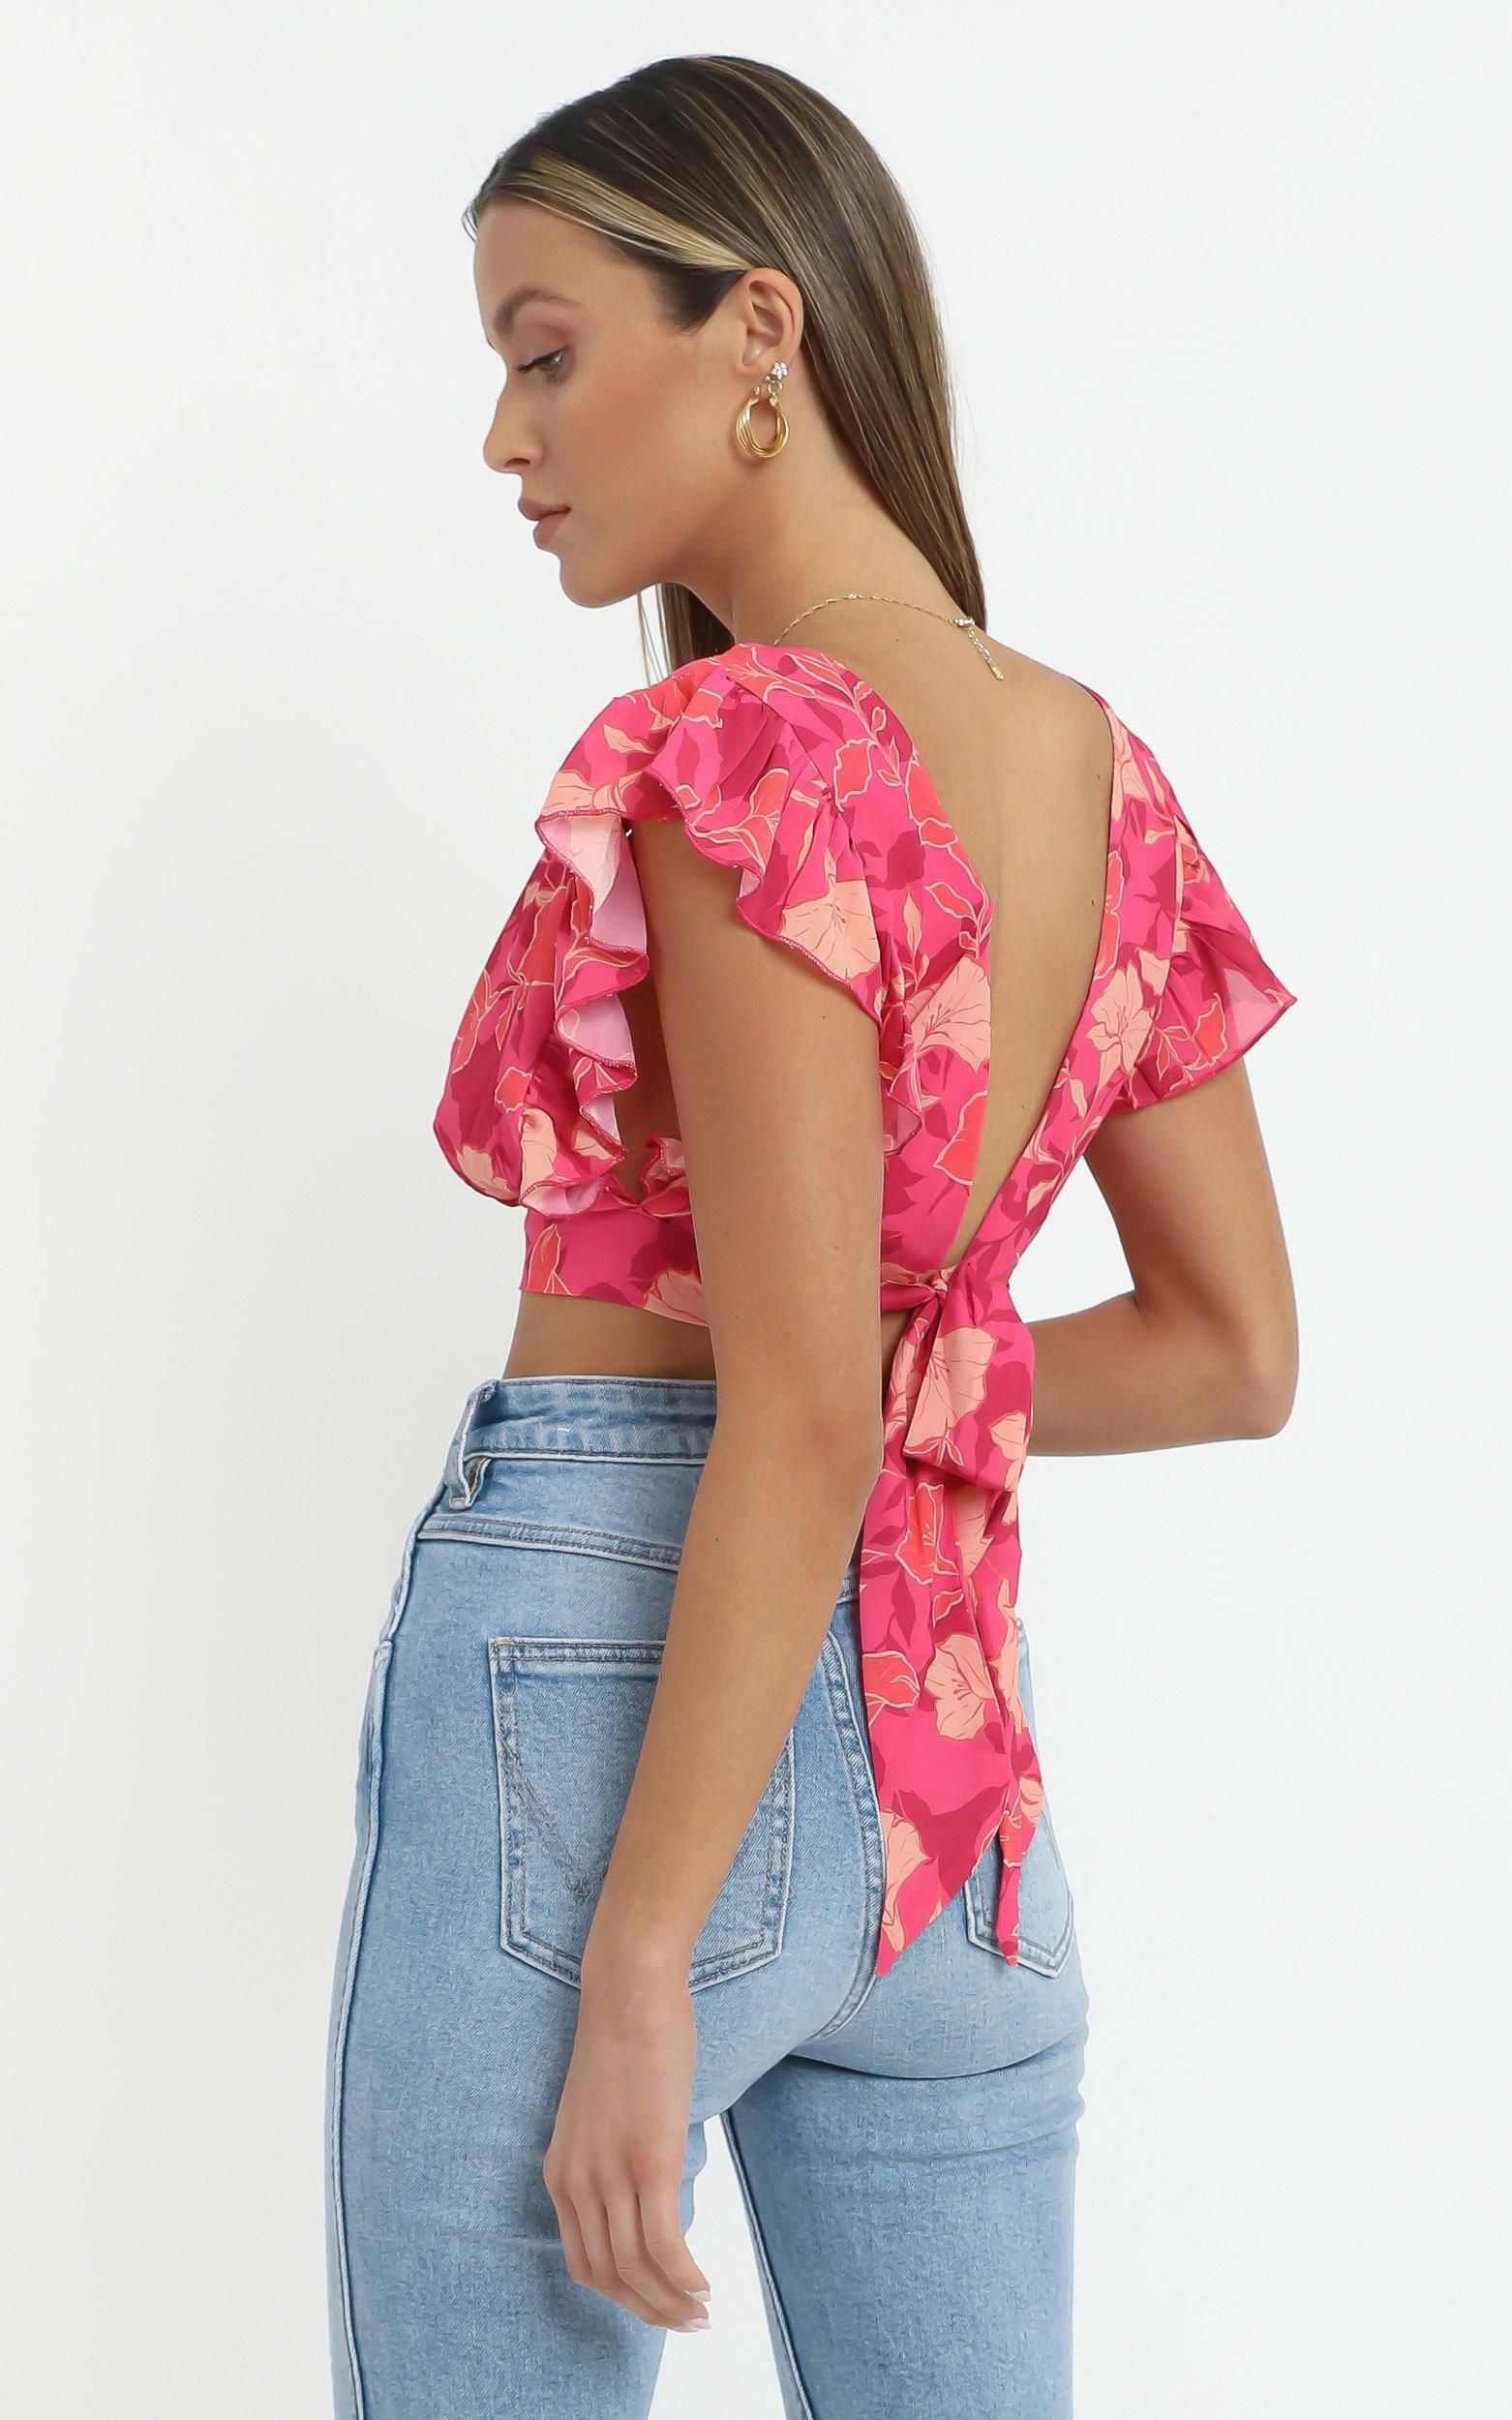 Lets Mingle Top in Berry Floral - 14 (XL), PNK13, hi-res image number null